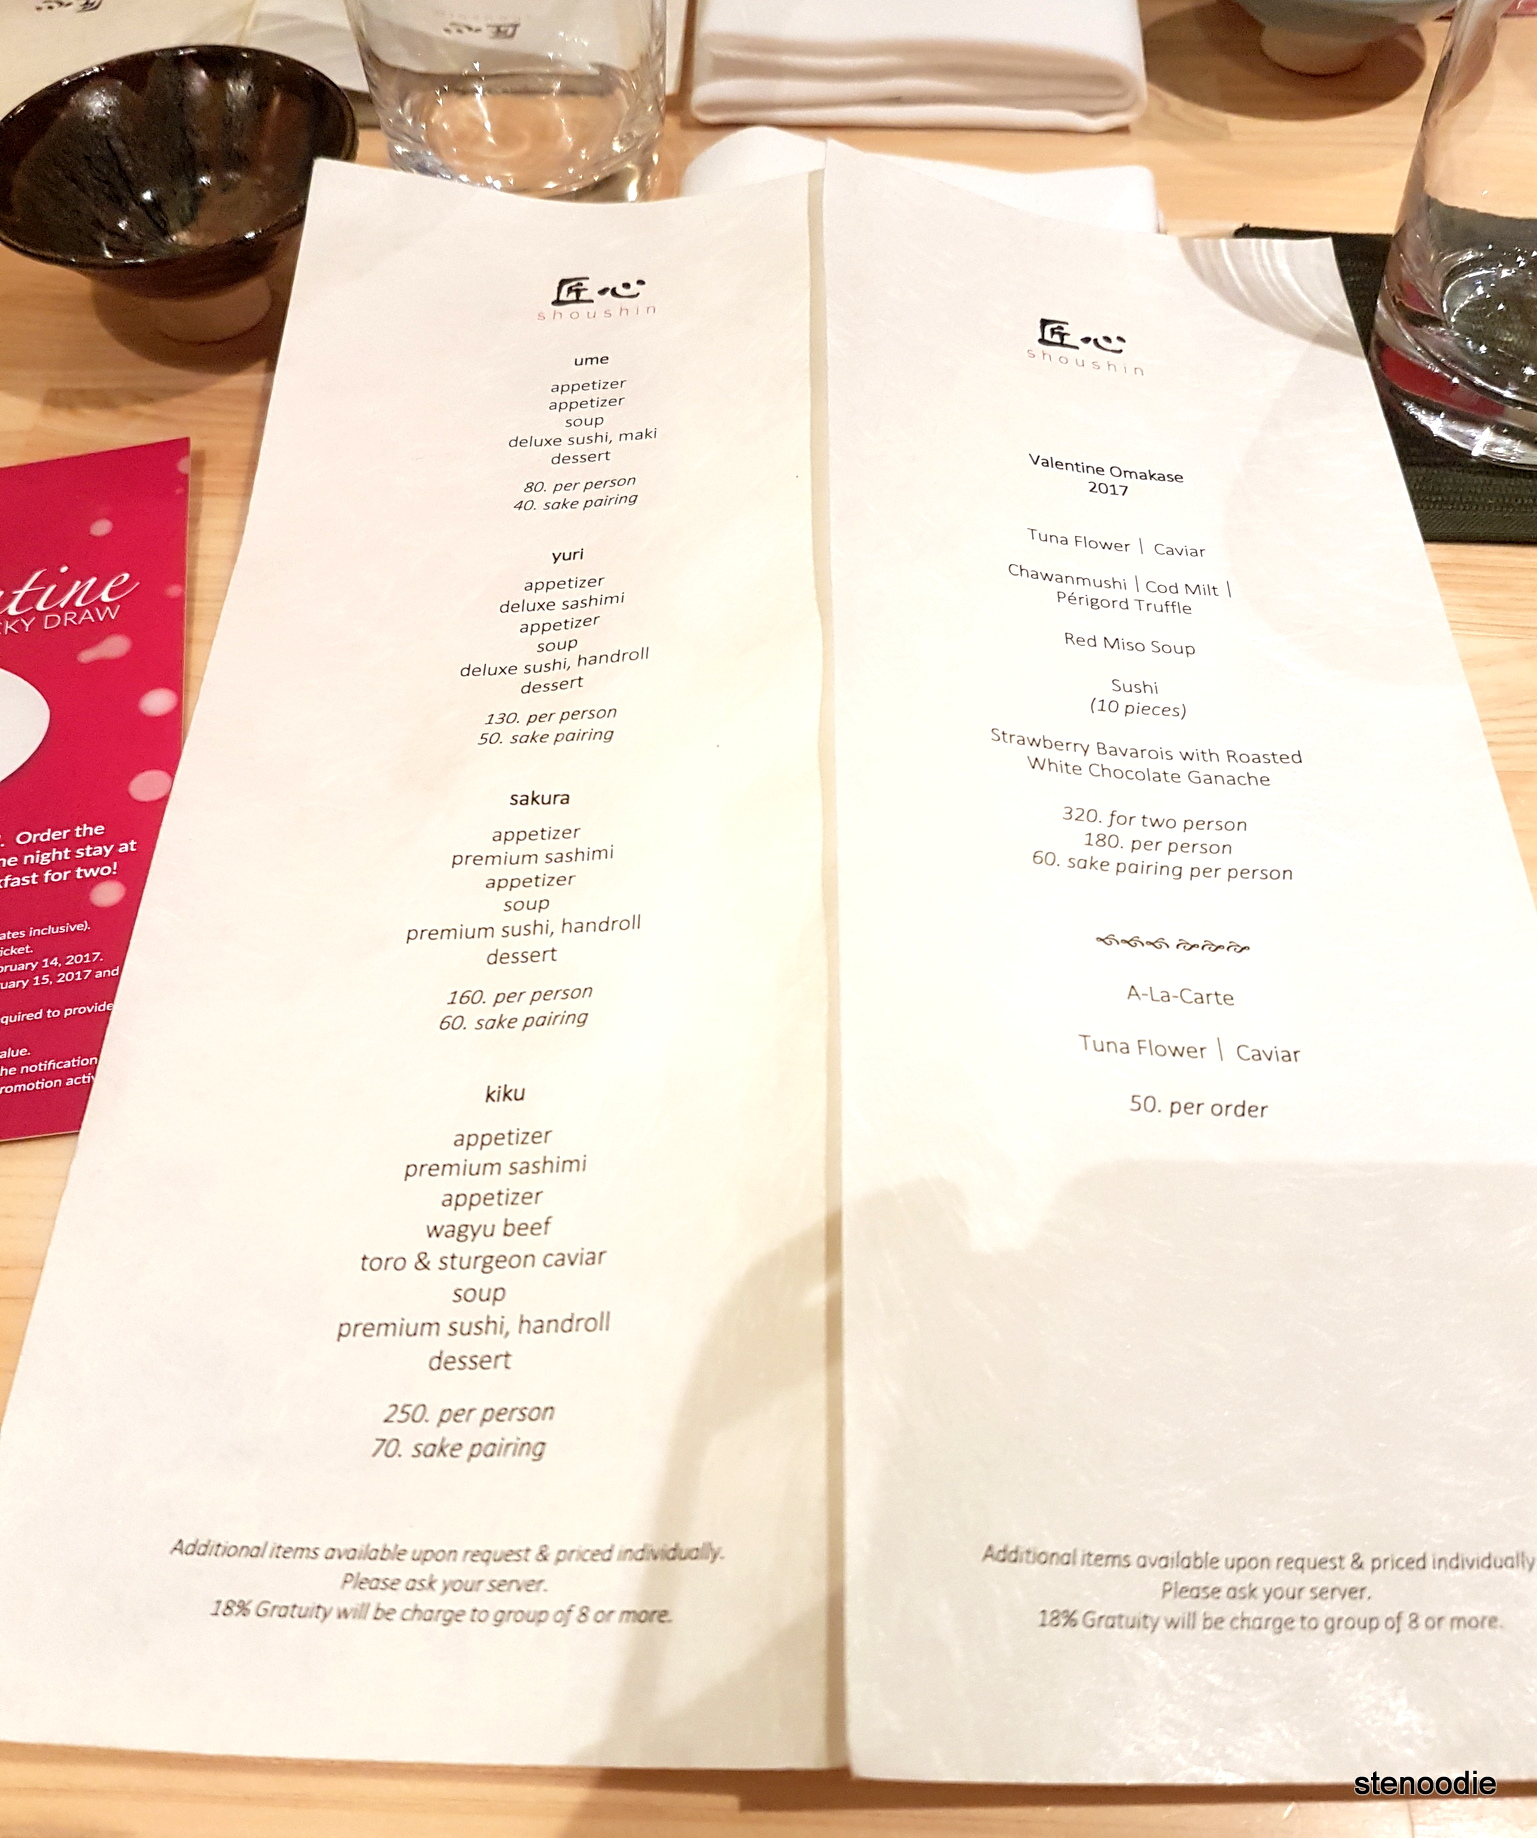 Shoushin omakase menus and price